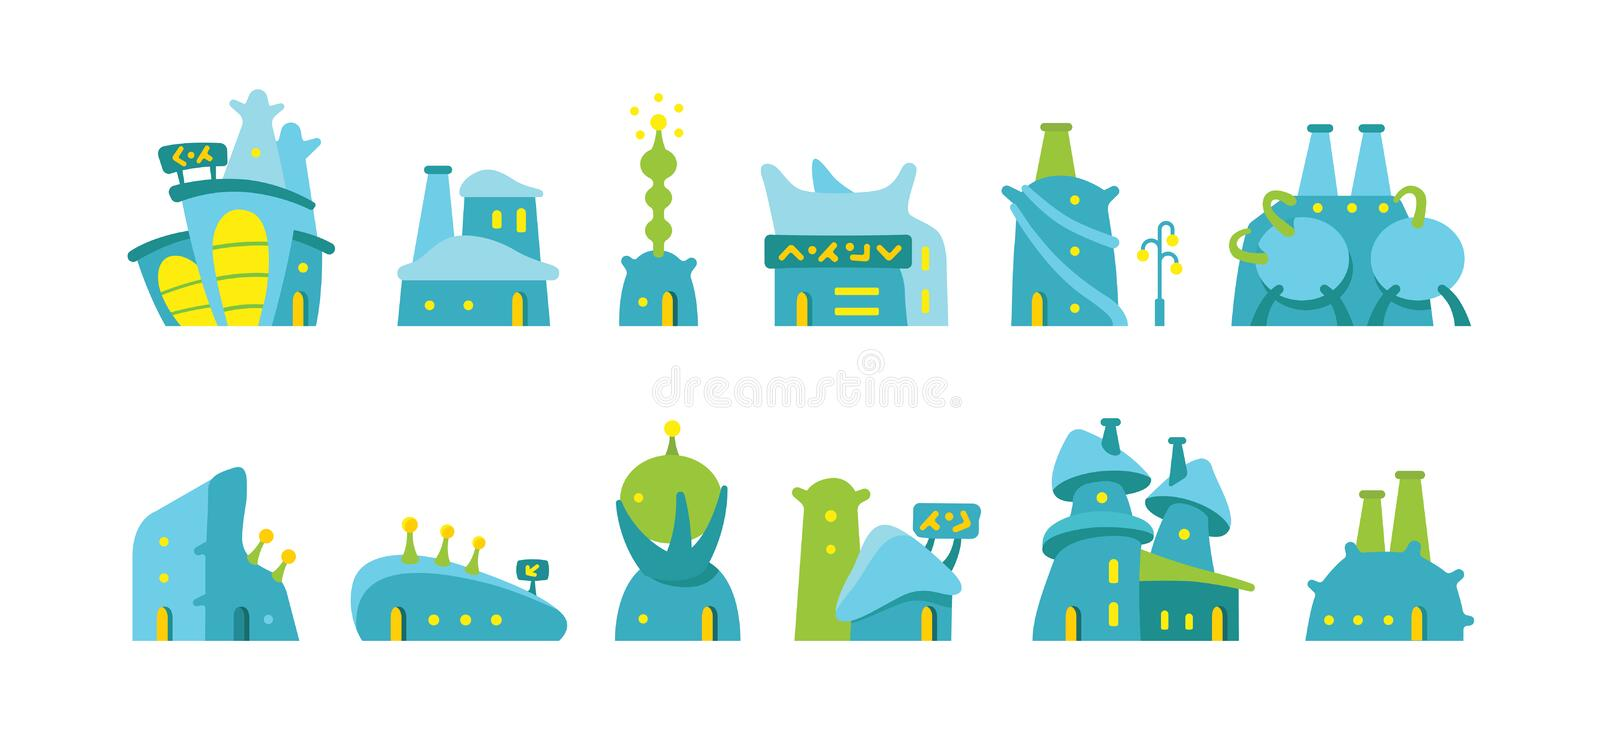 City future fantastic Set of alien buildings for game design. Vector stock illustration. royalty free illustration